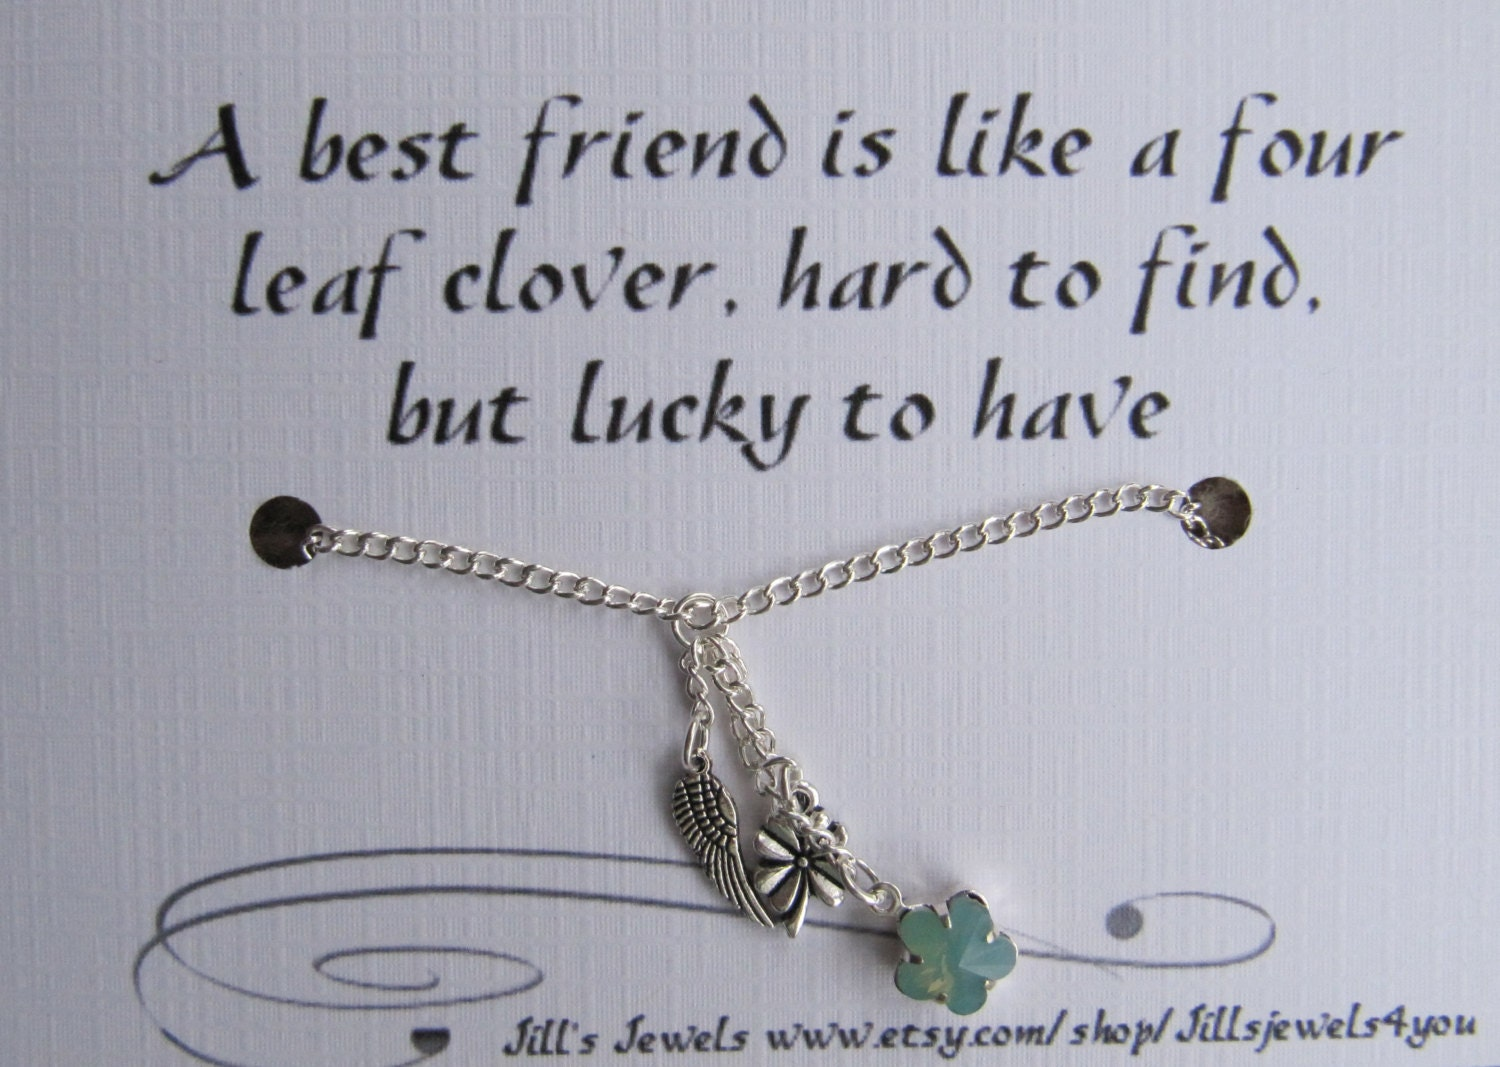 Quotes About Pearls And Friendship Fascinating Best Friend Lucky Charm Necklace And Friendship Quote